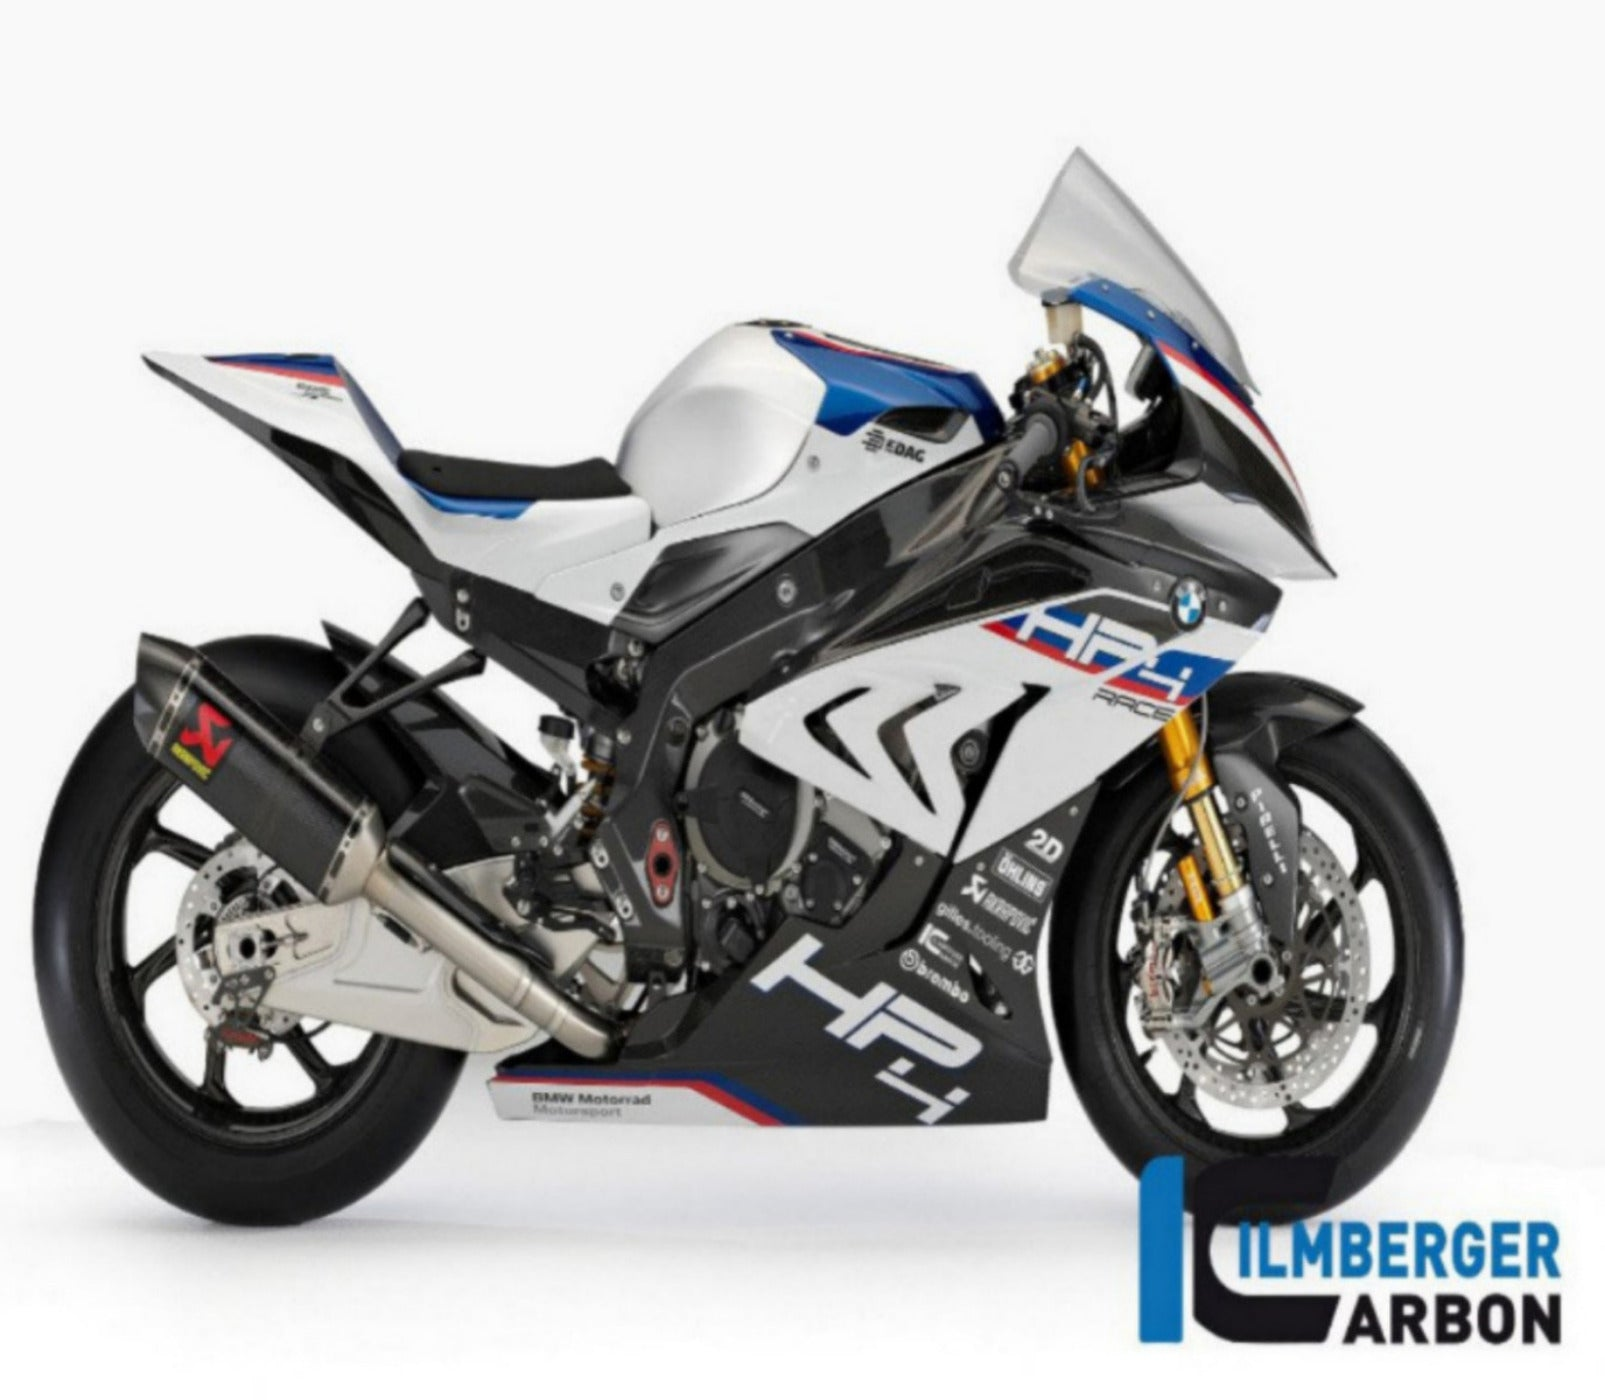 BMW S1000RR HP4 Race, Carbon Parts, Ilmberger Carbonparts - Averys Motorcycles